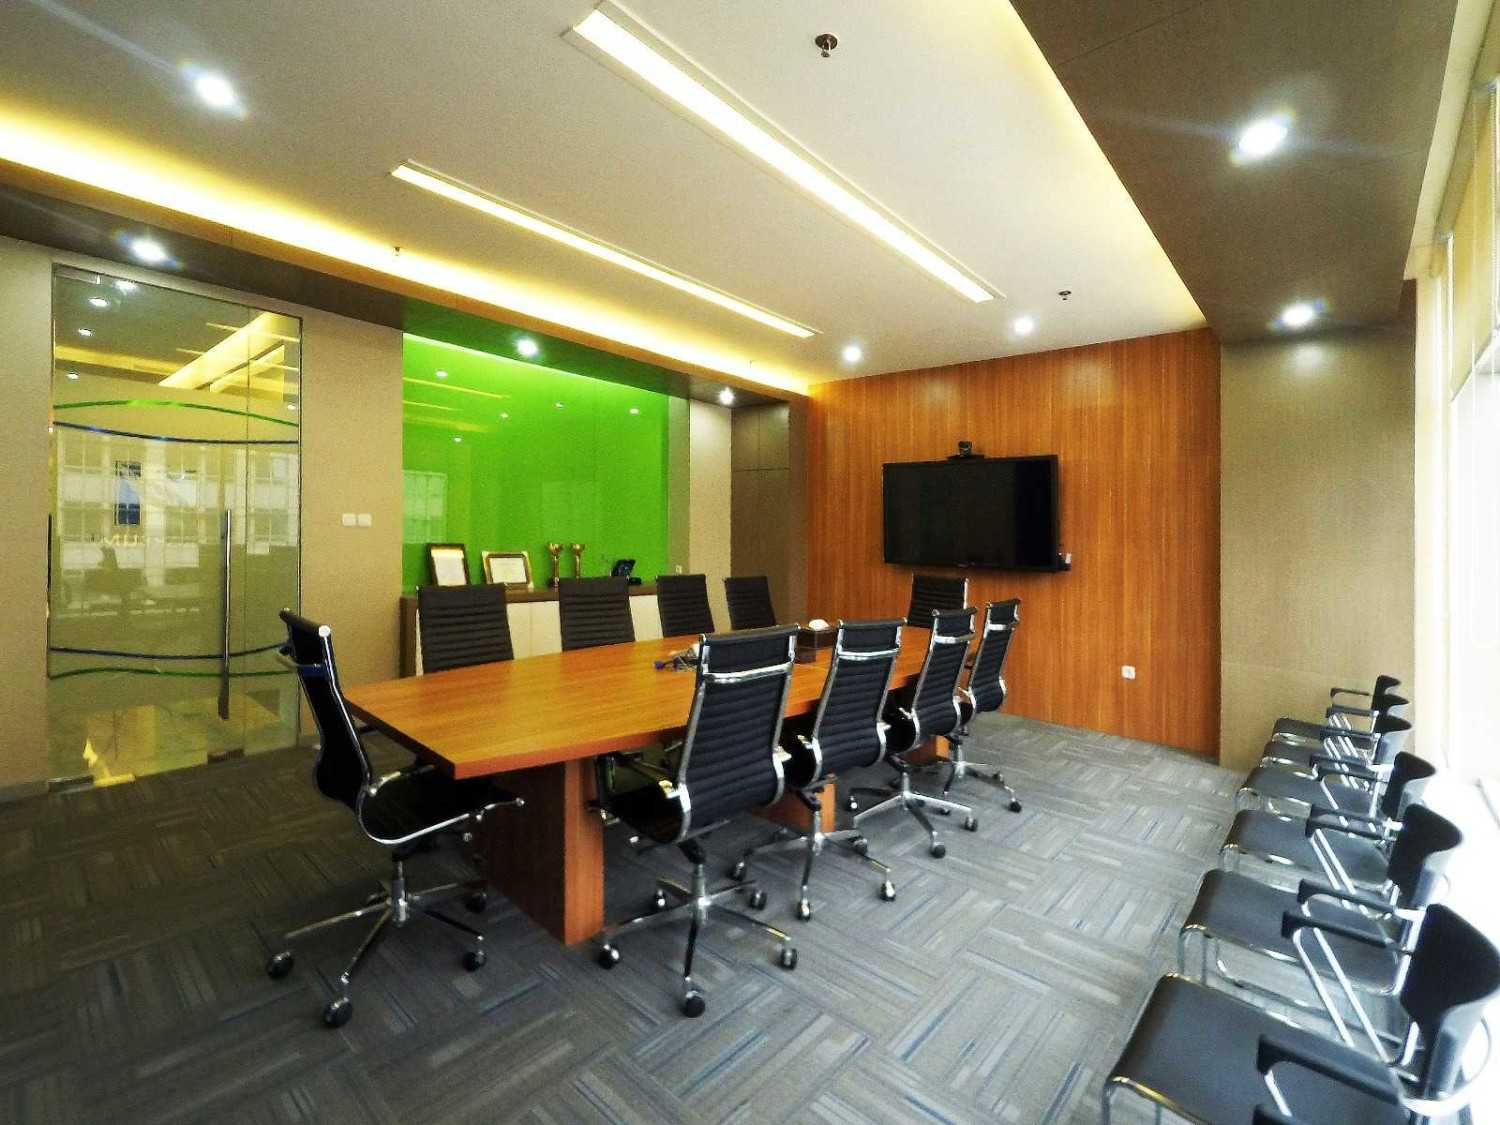 Arkadia Works Sekar Bumi Office Renovation Plaza Asia 21St Floor Plaza Asia 21St Floor Meeting Room  14076